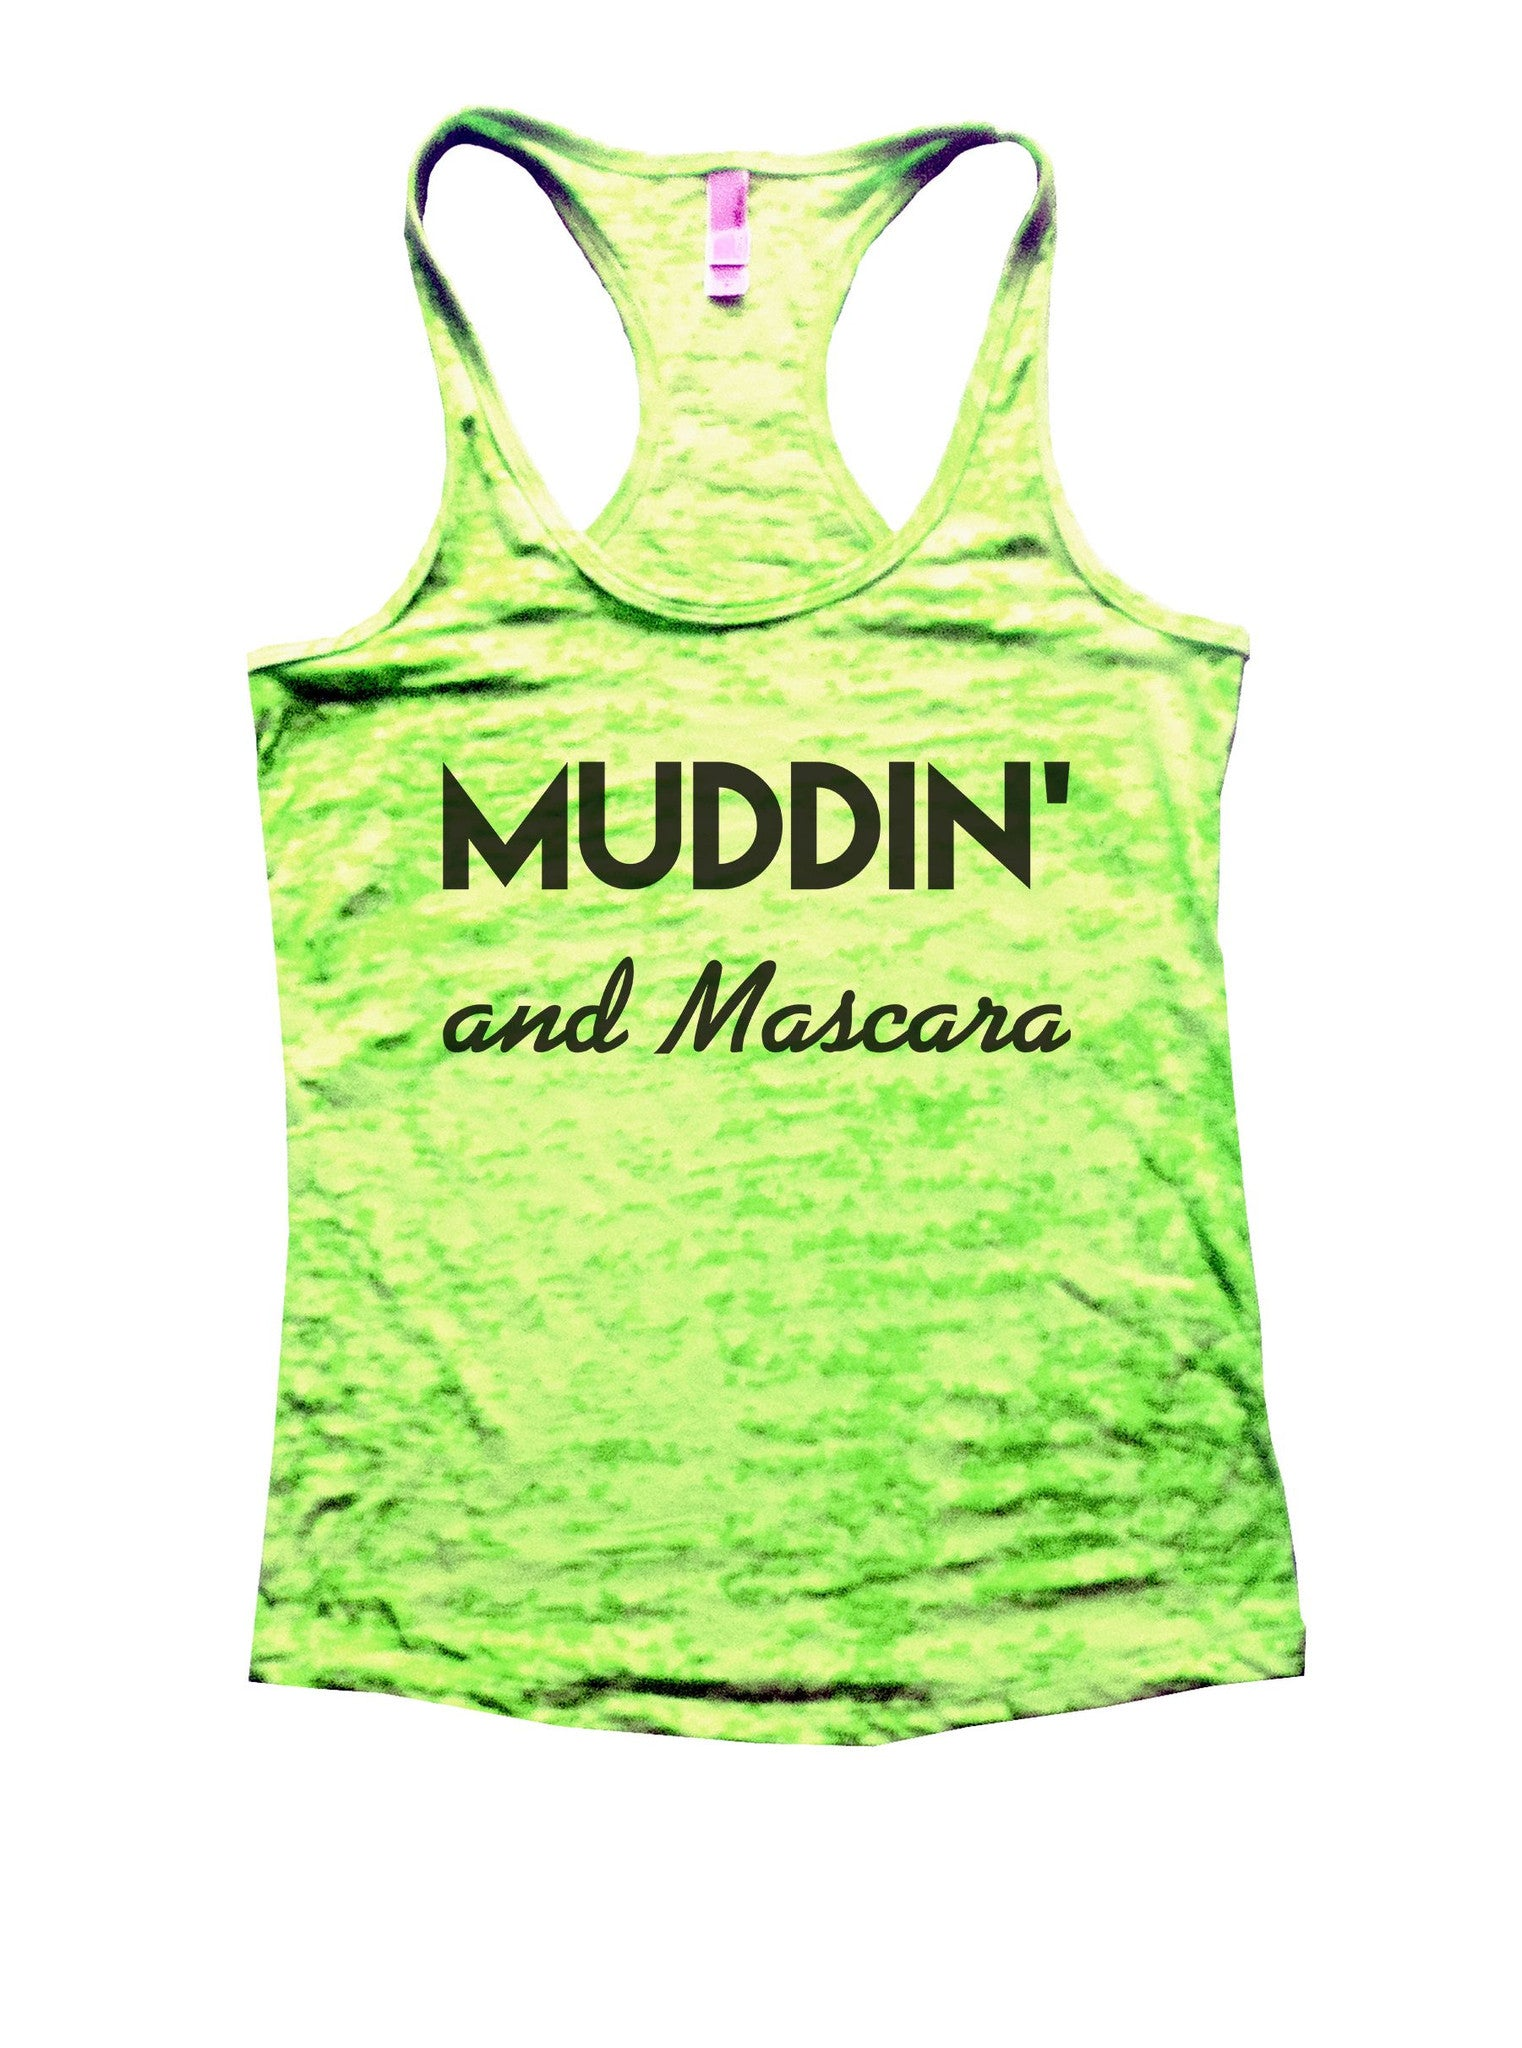 Muddin And Mascara Burnout Tank Top By BurnoutTankTops.com - 803 - Funny Shirts Tank Tops Burnouts and Triblends  - 2